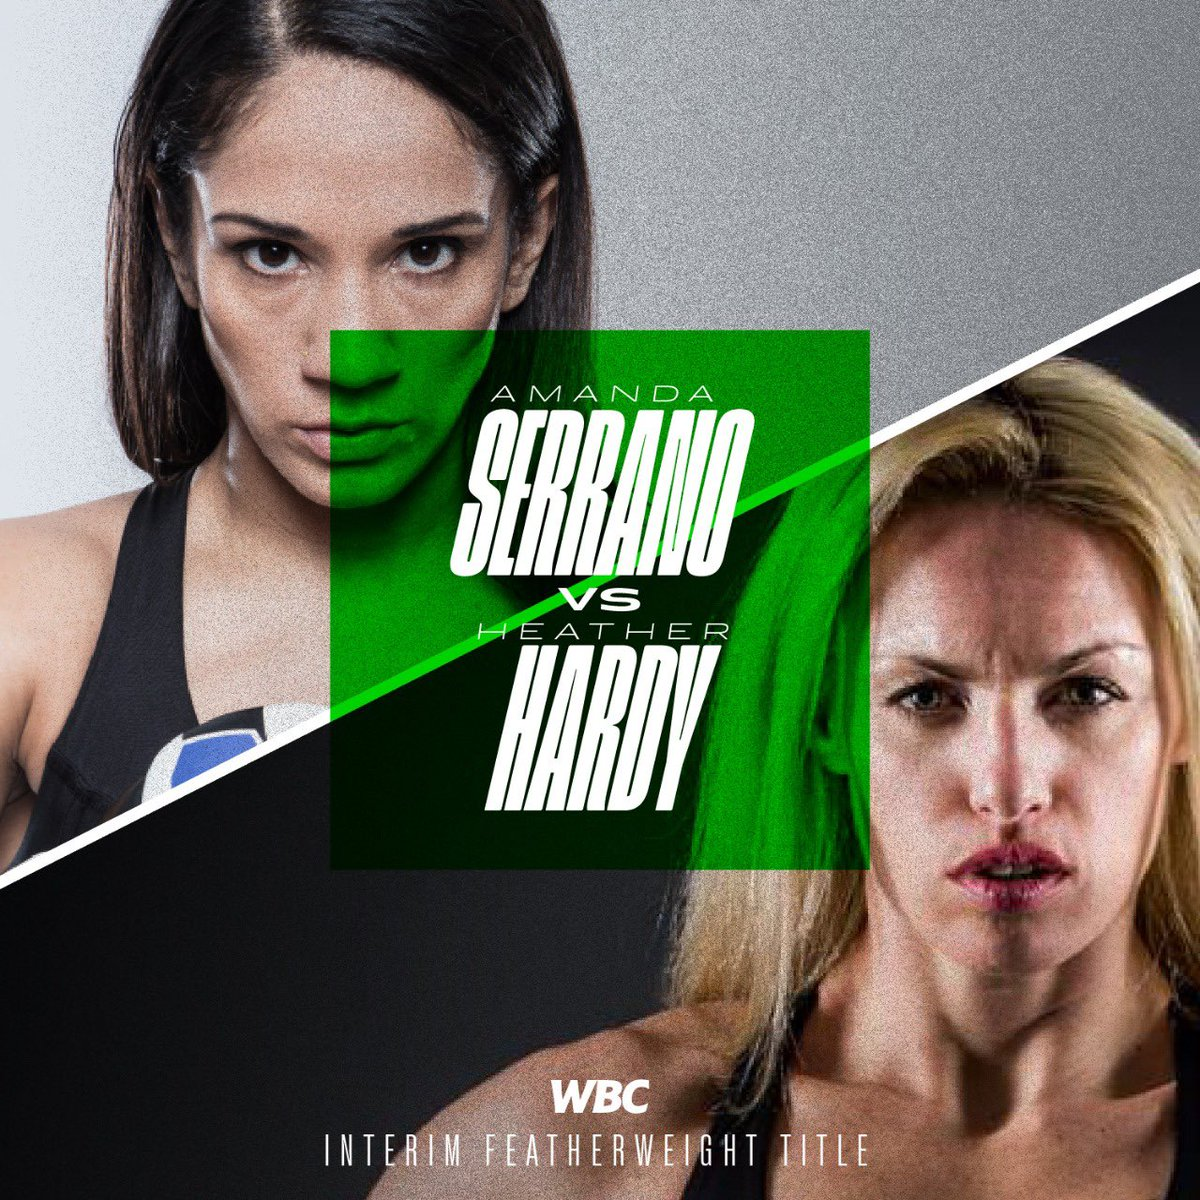 .@Serranosisters & @HeatherHardyBox exemplary commitment to clean boxing ! Have been tested by @Vada_Testing under the @WBCBoxing Clean Boxing Program #CBP #WomenLeadTheWay #women